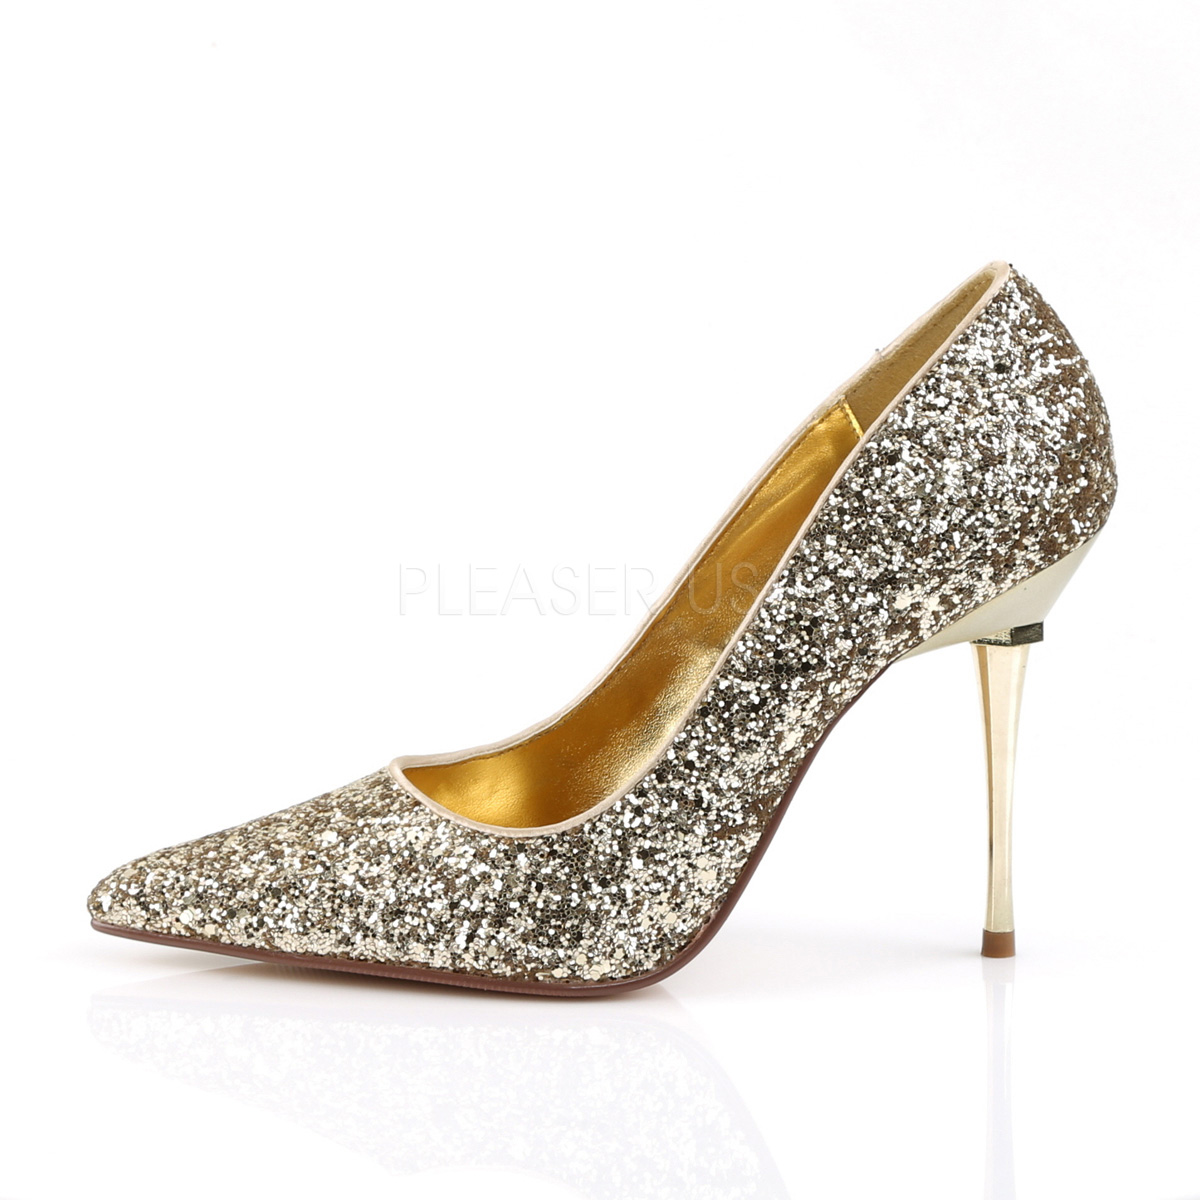 697ca74abf92 ... Stiletto Pumps APPEAL-20G - Glitter Gold ...